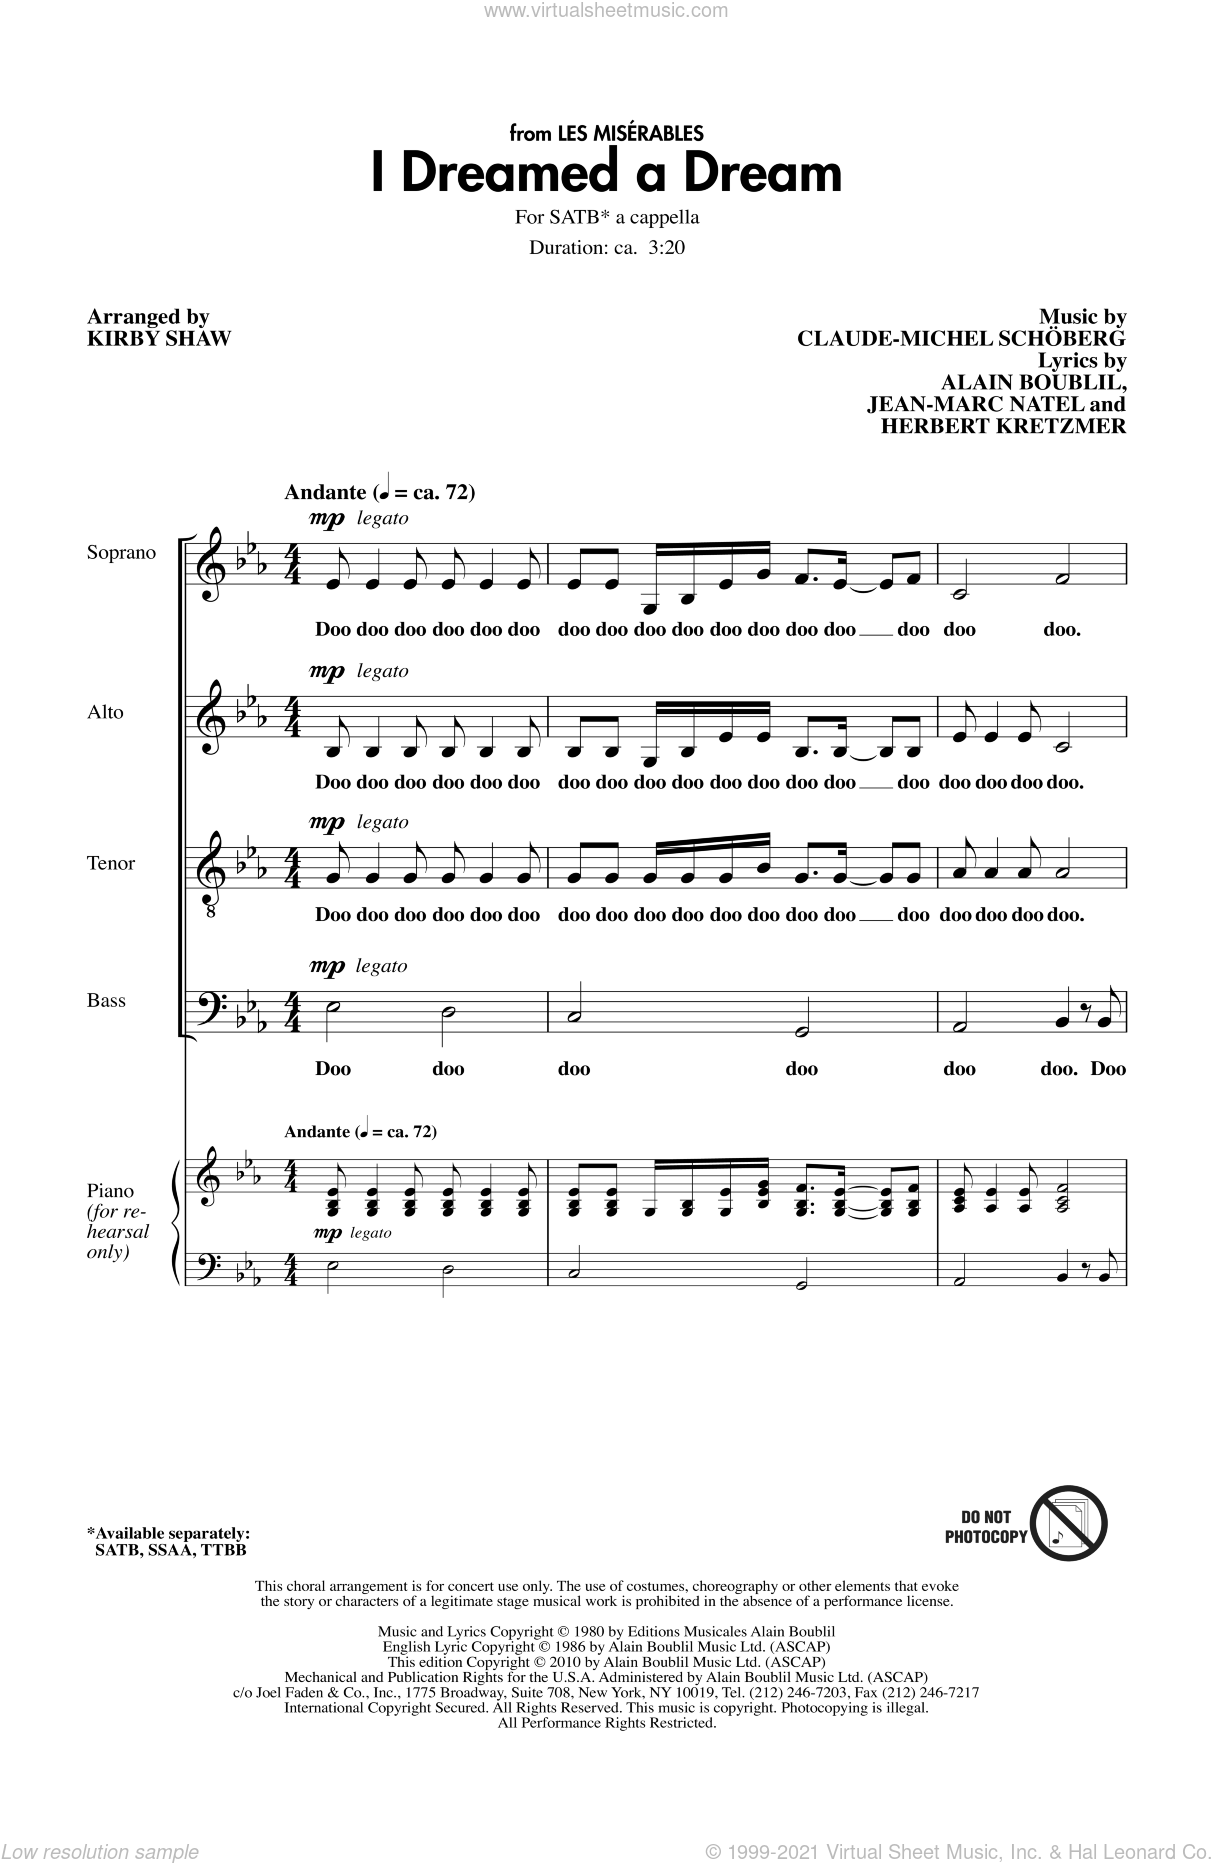 I Dreamed A Dream sheet music for choir (SATB: soprano, alto, tenor, bass) by Alain Boublil, Claude-Michel Schonberg, Herbert Kretzmer, Jean-Marc Natel and Kirby Shaw, intermediate skill level